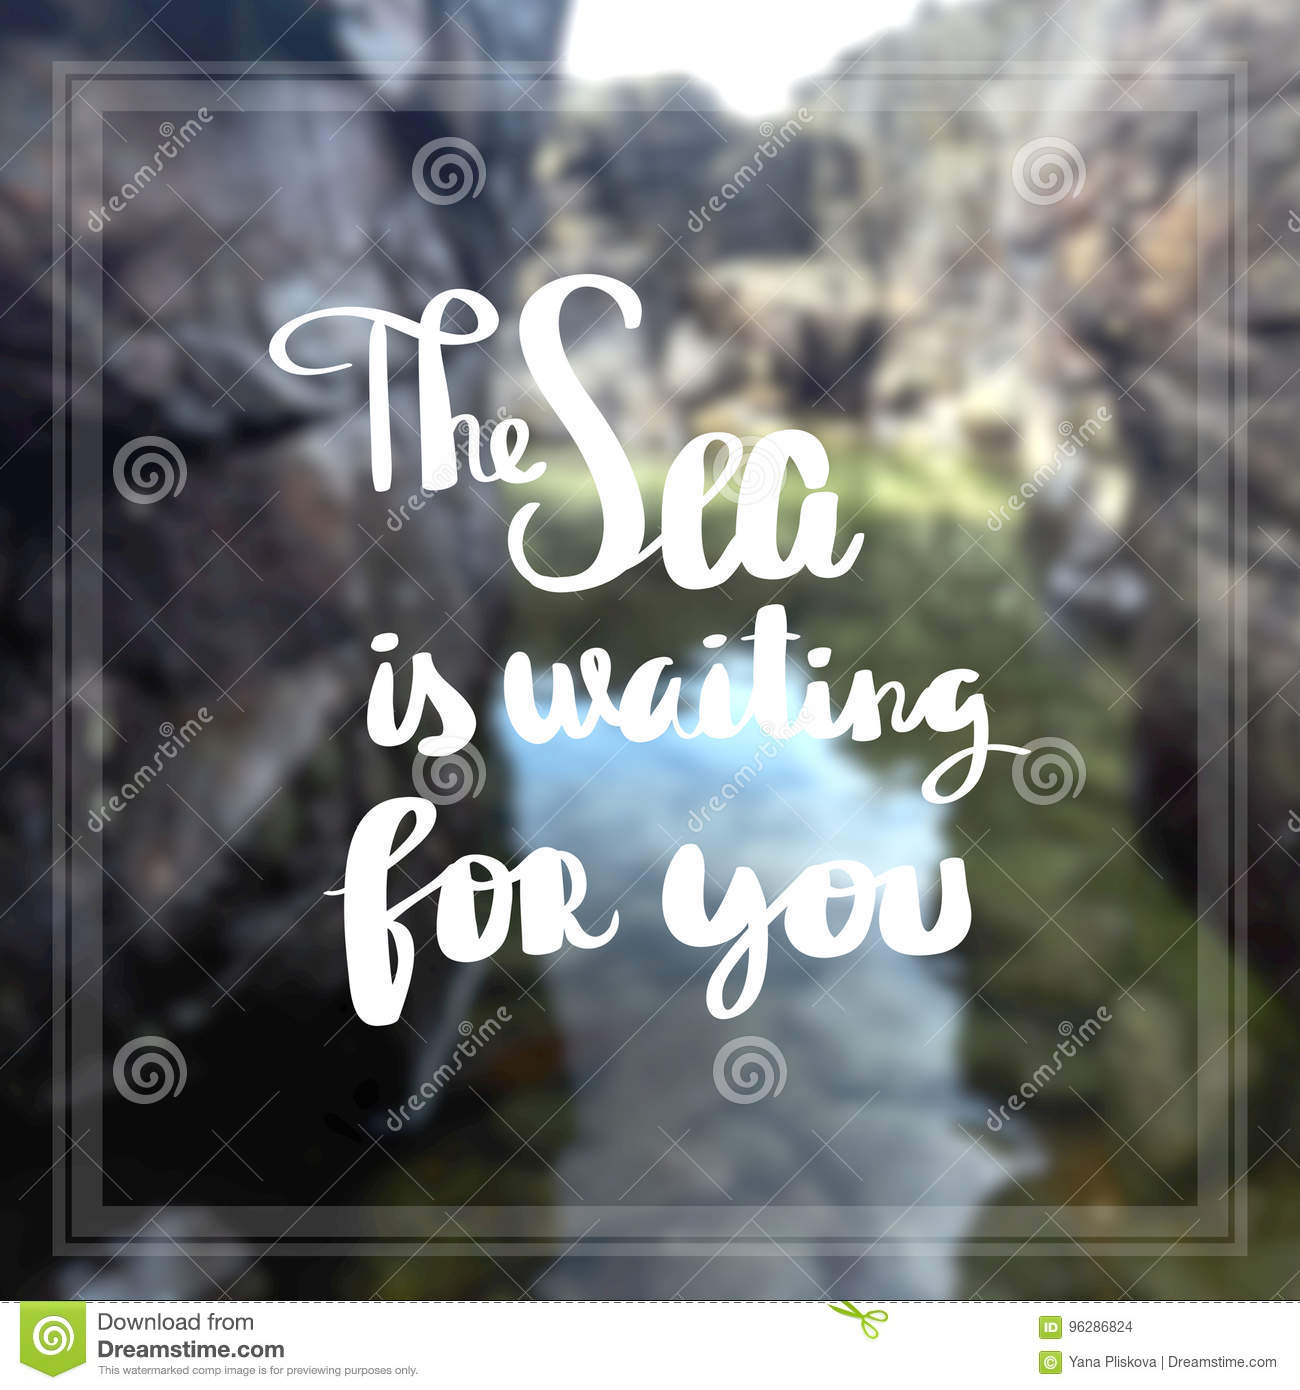 The Sea Is Waiting For You Inspiration And Motivation Quotes Stock